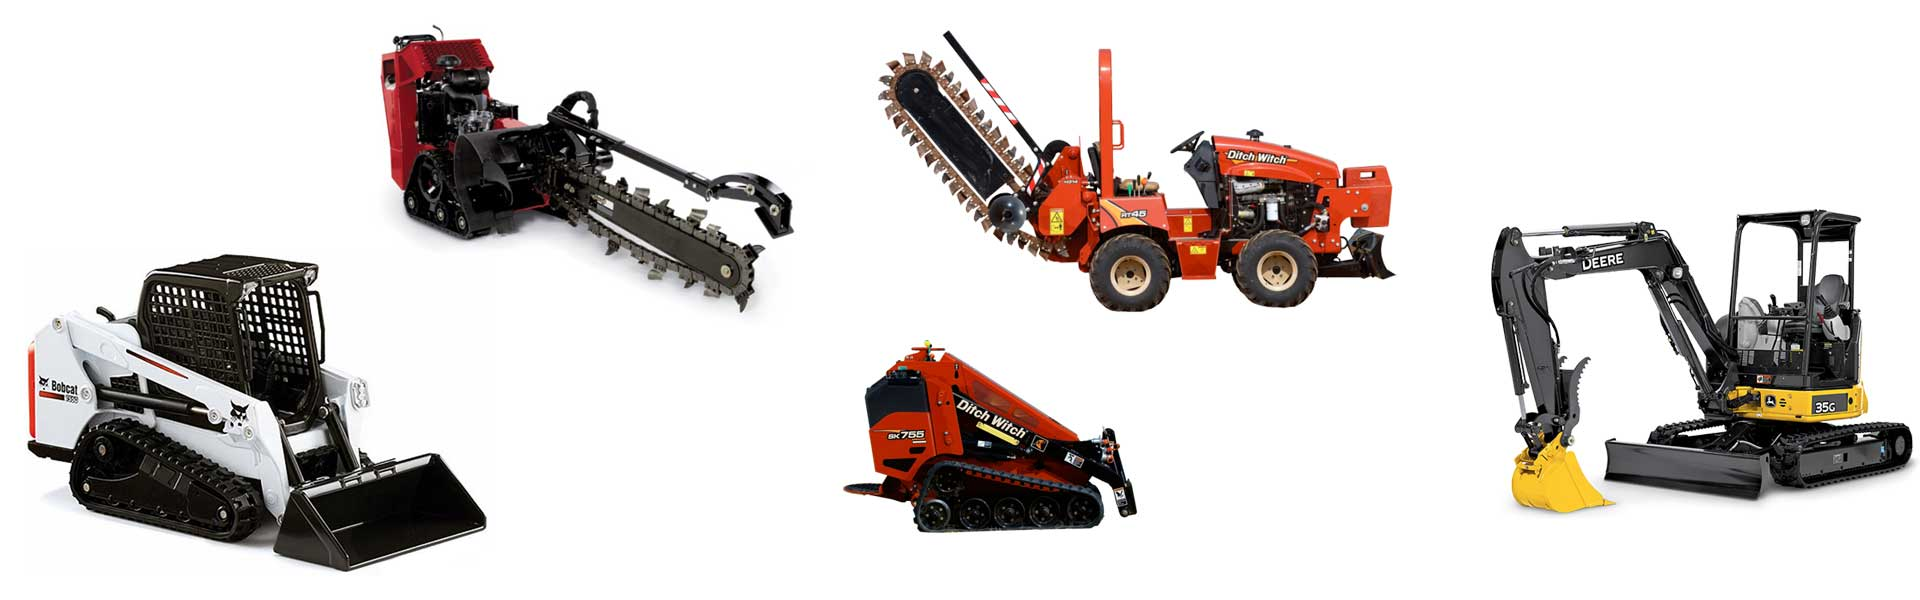 Equipment for rent in Ottawa KS, Leavenworth KS, Independence MO, Louisburg KS, Overland Park KS, Gardner KS, Pittsburg KS, McPherson KS, Garnett KS, Martin City MO, Paola KS, Harrisonville MO